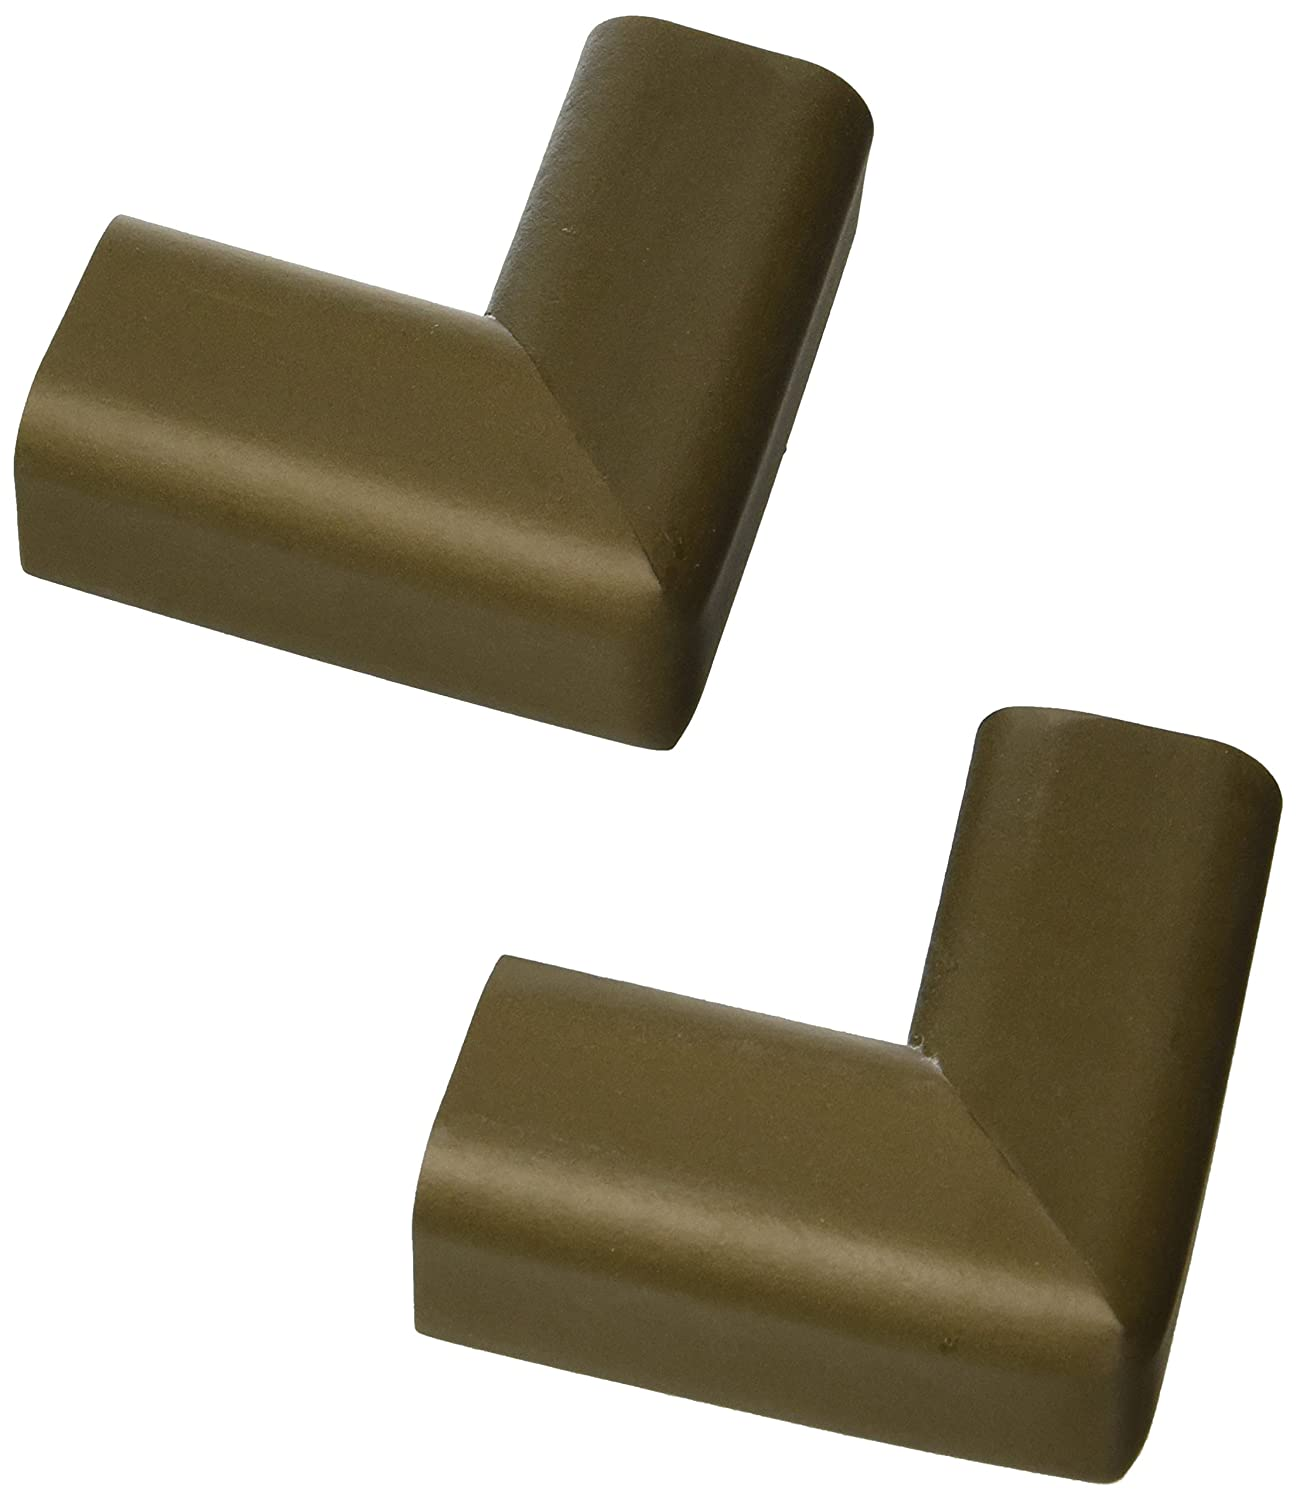 KidCo Foam Corner Protector, Brown, 4 Count Inc. S378